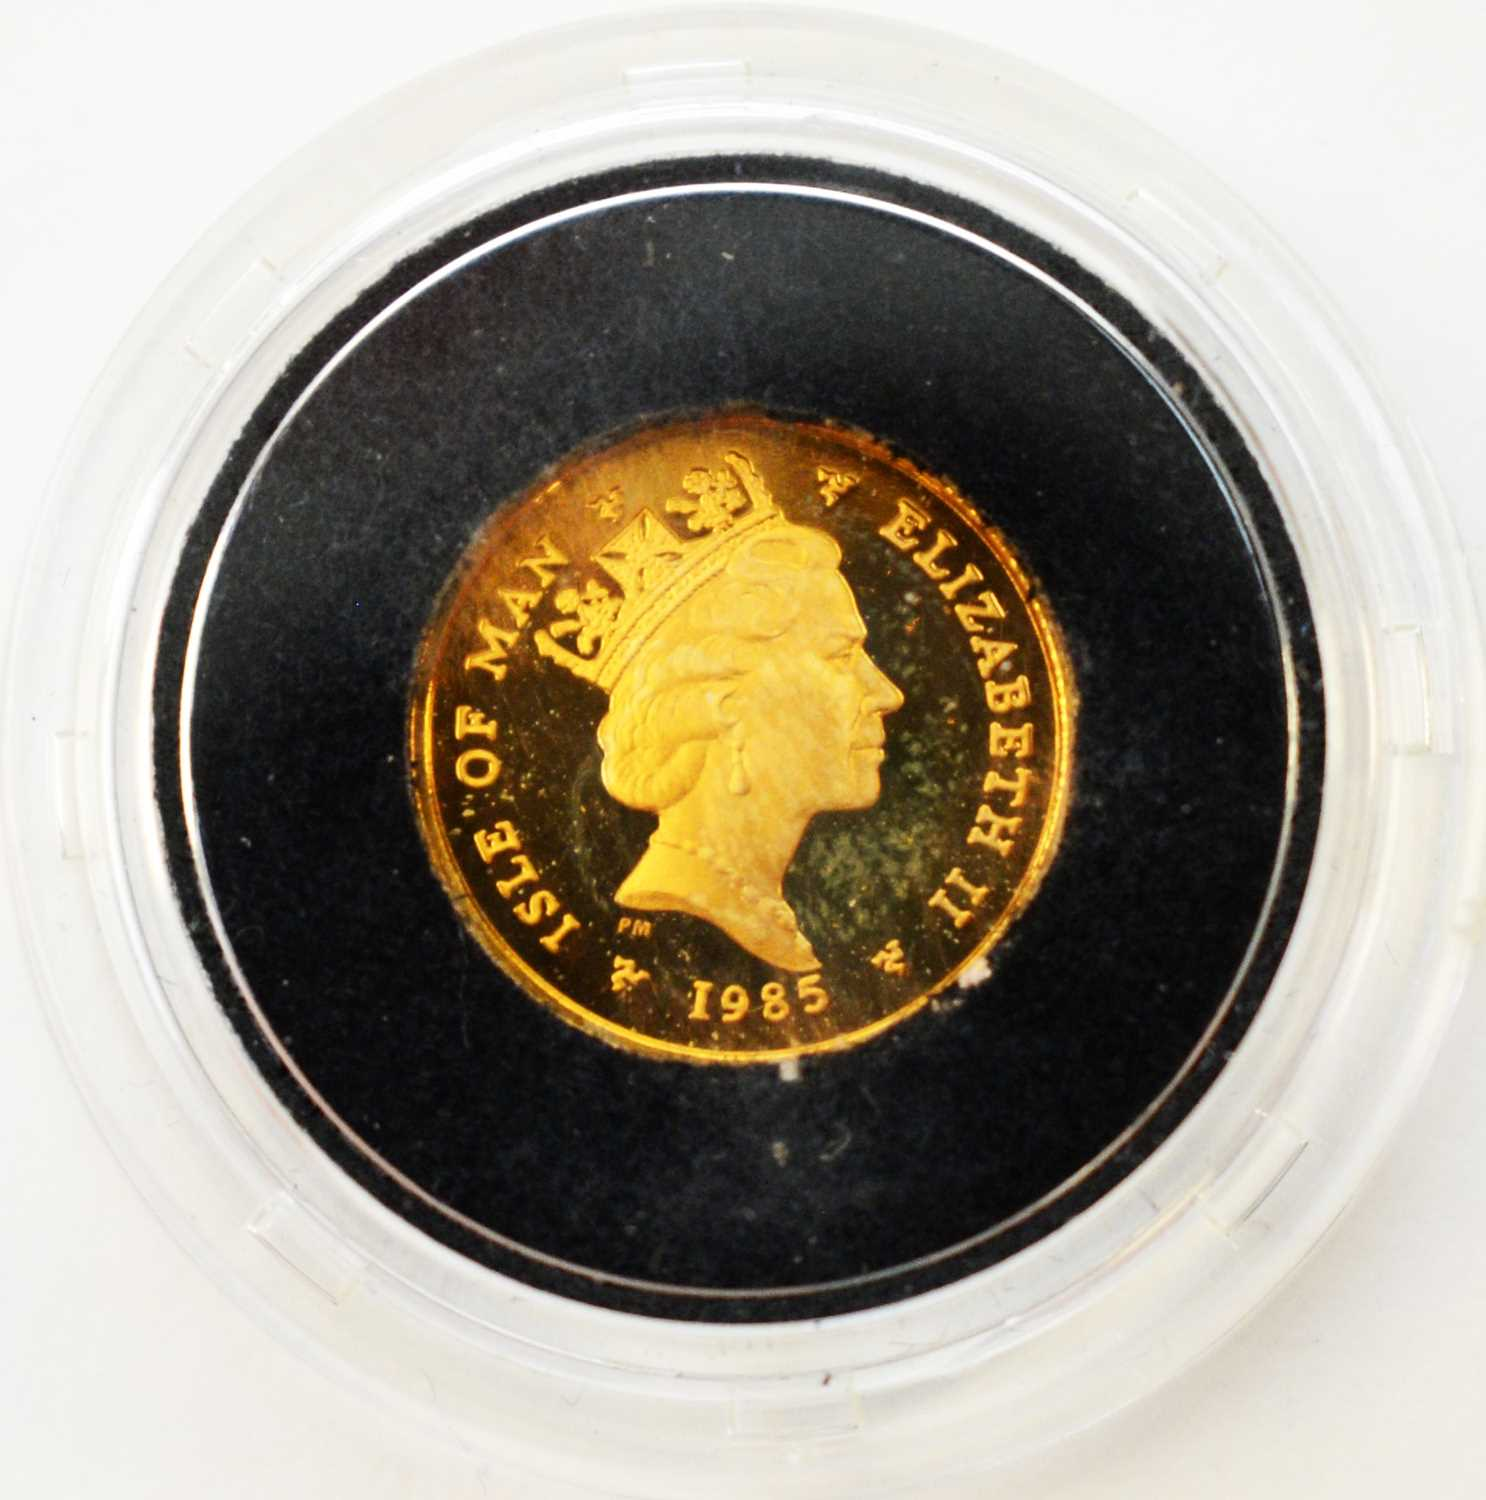 Pobjoy gold and platinum coins - Image 3 of 4